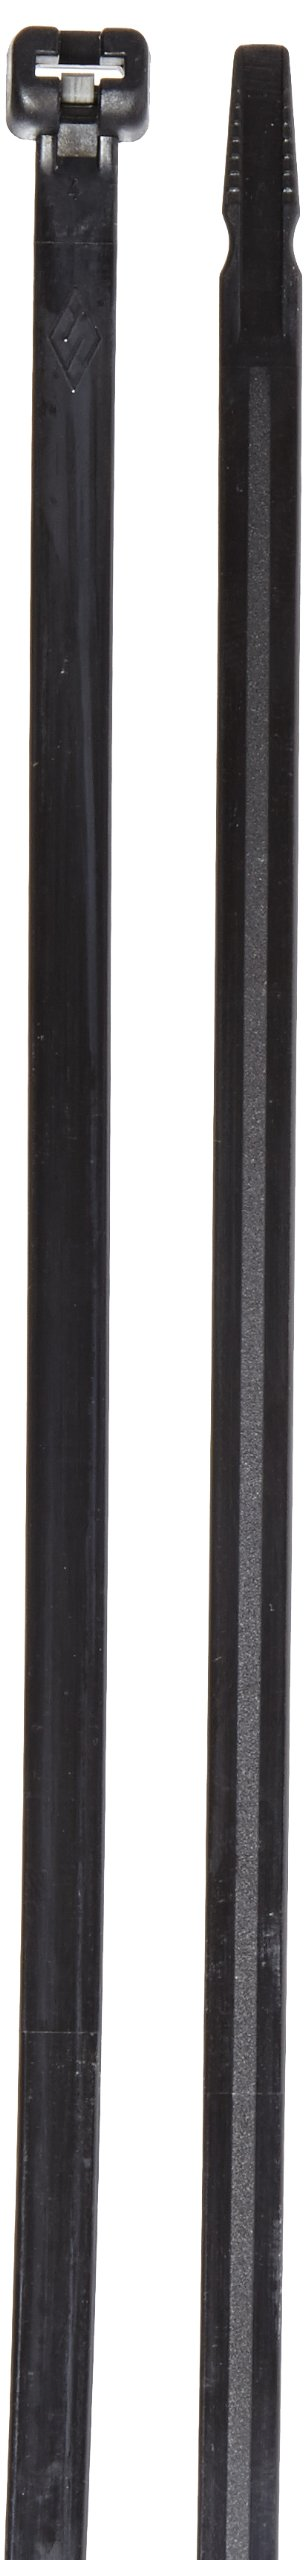 Cable Tie with Stainless Steel Barb, 120 Tensile Strength, 14'' Length, Black